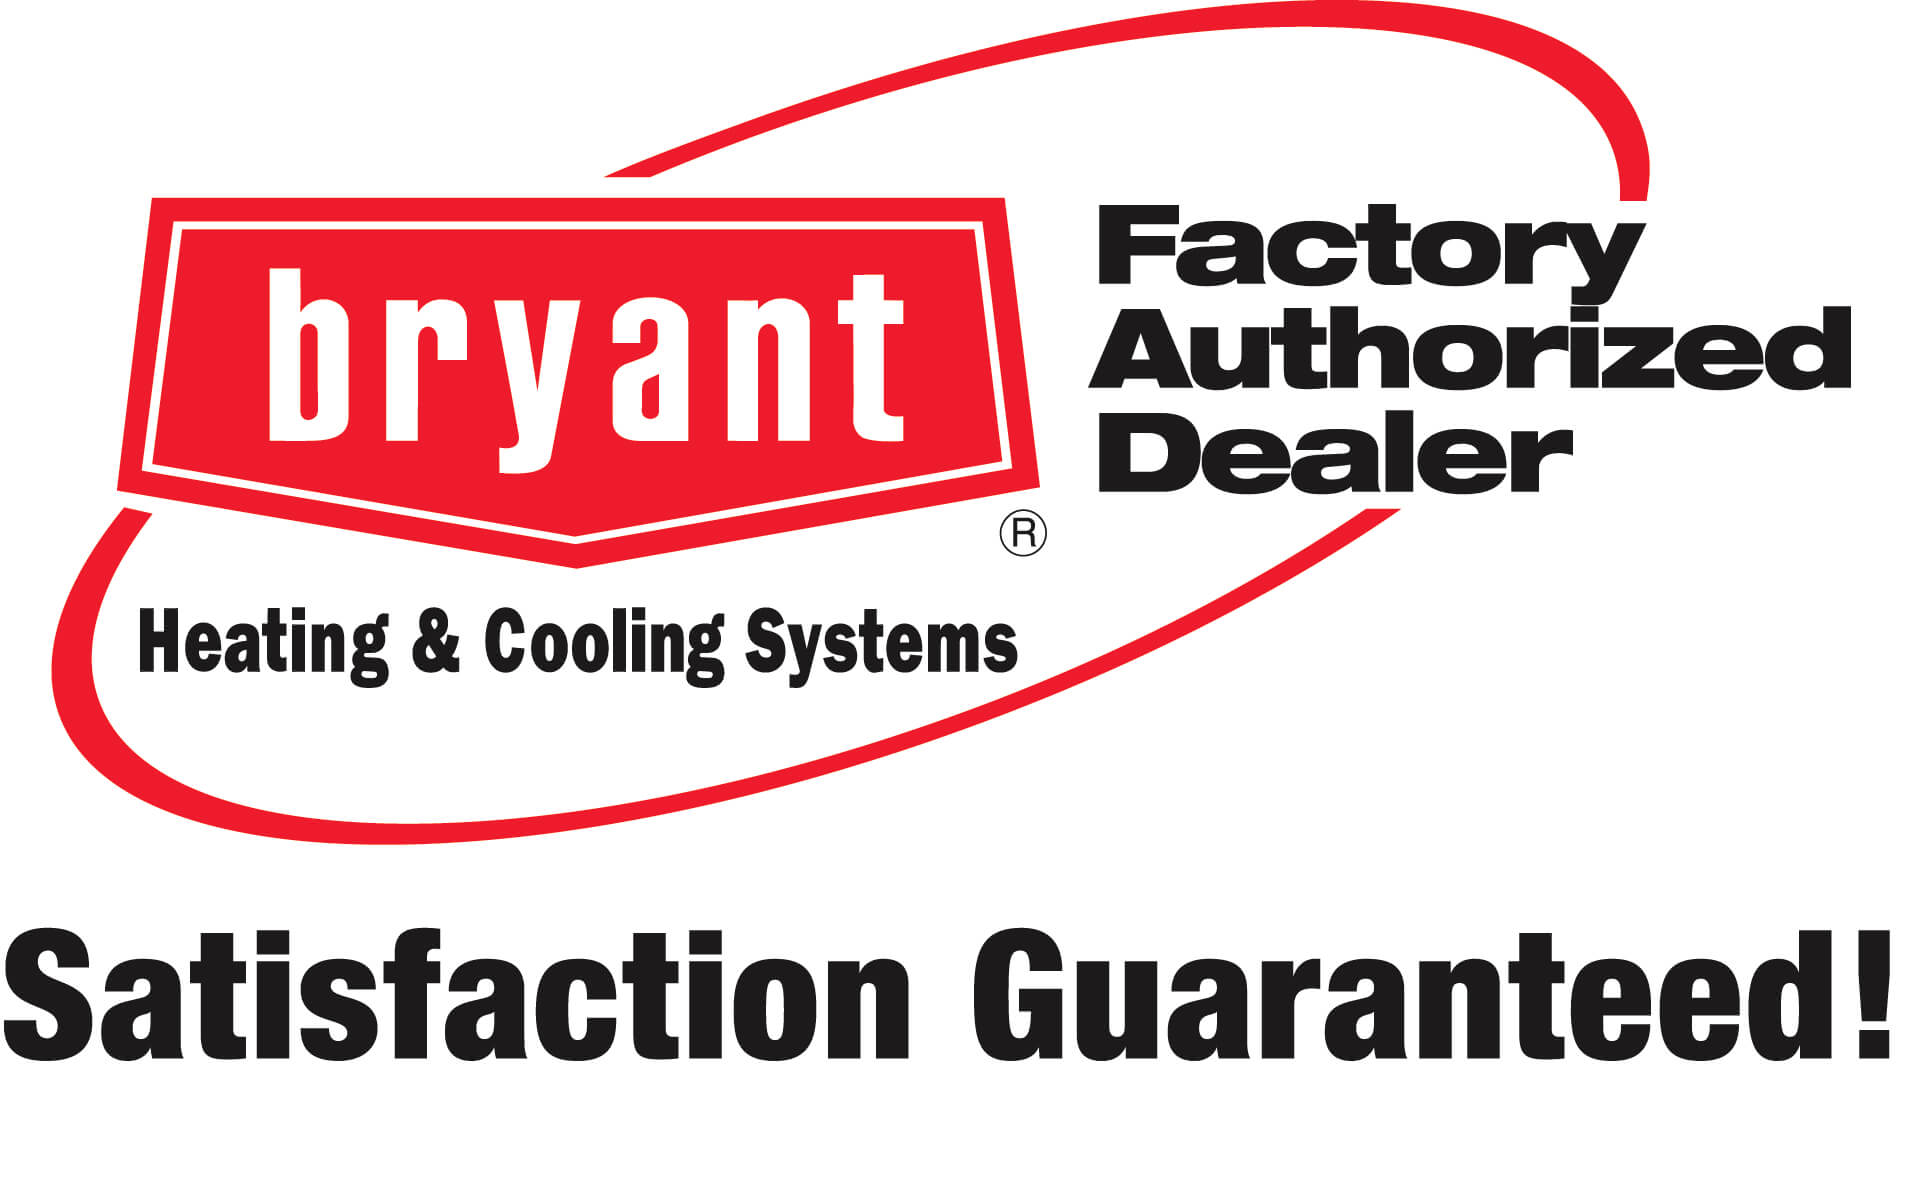 bryant heating and cooling company | heat & cool | danville, indiana